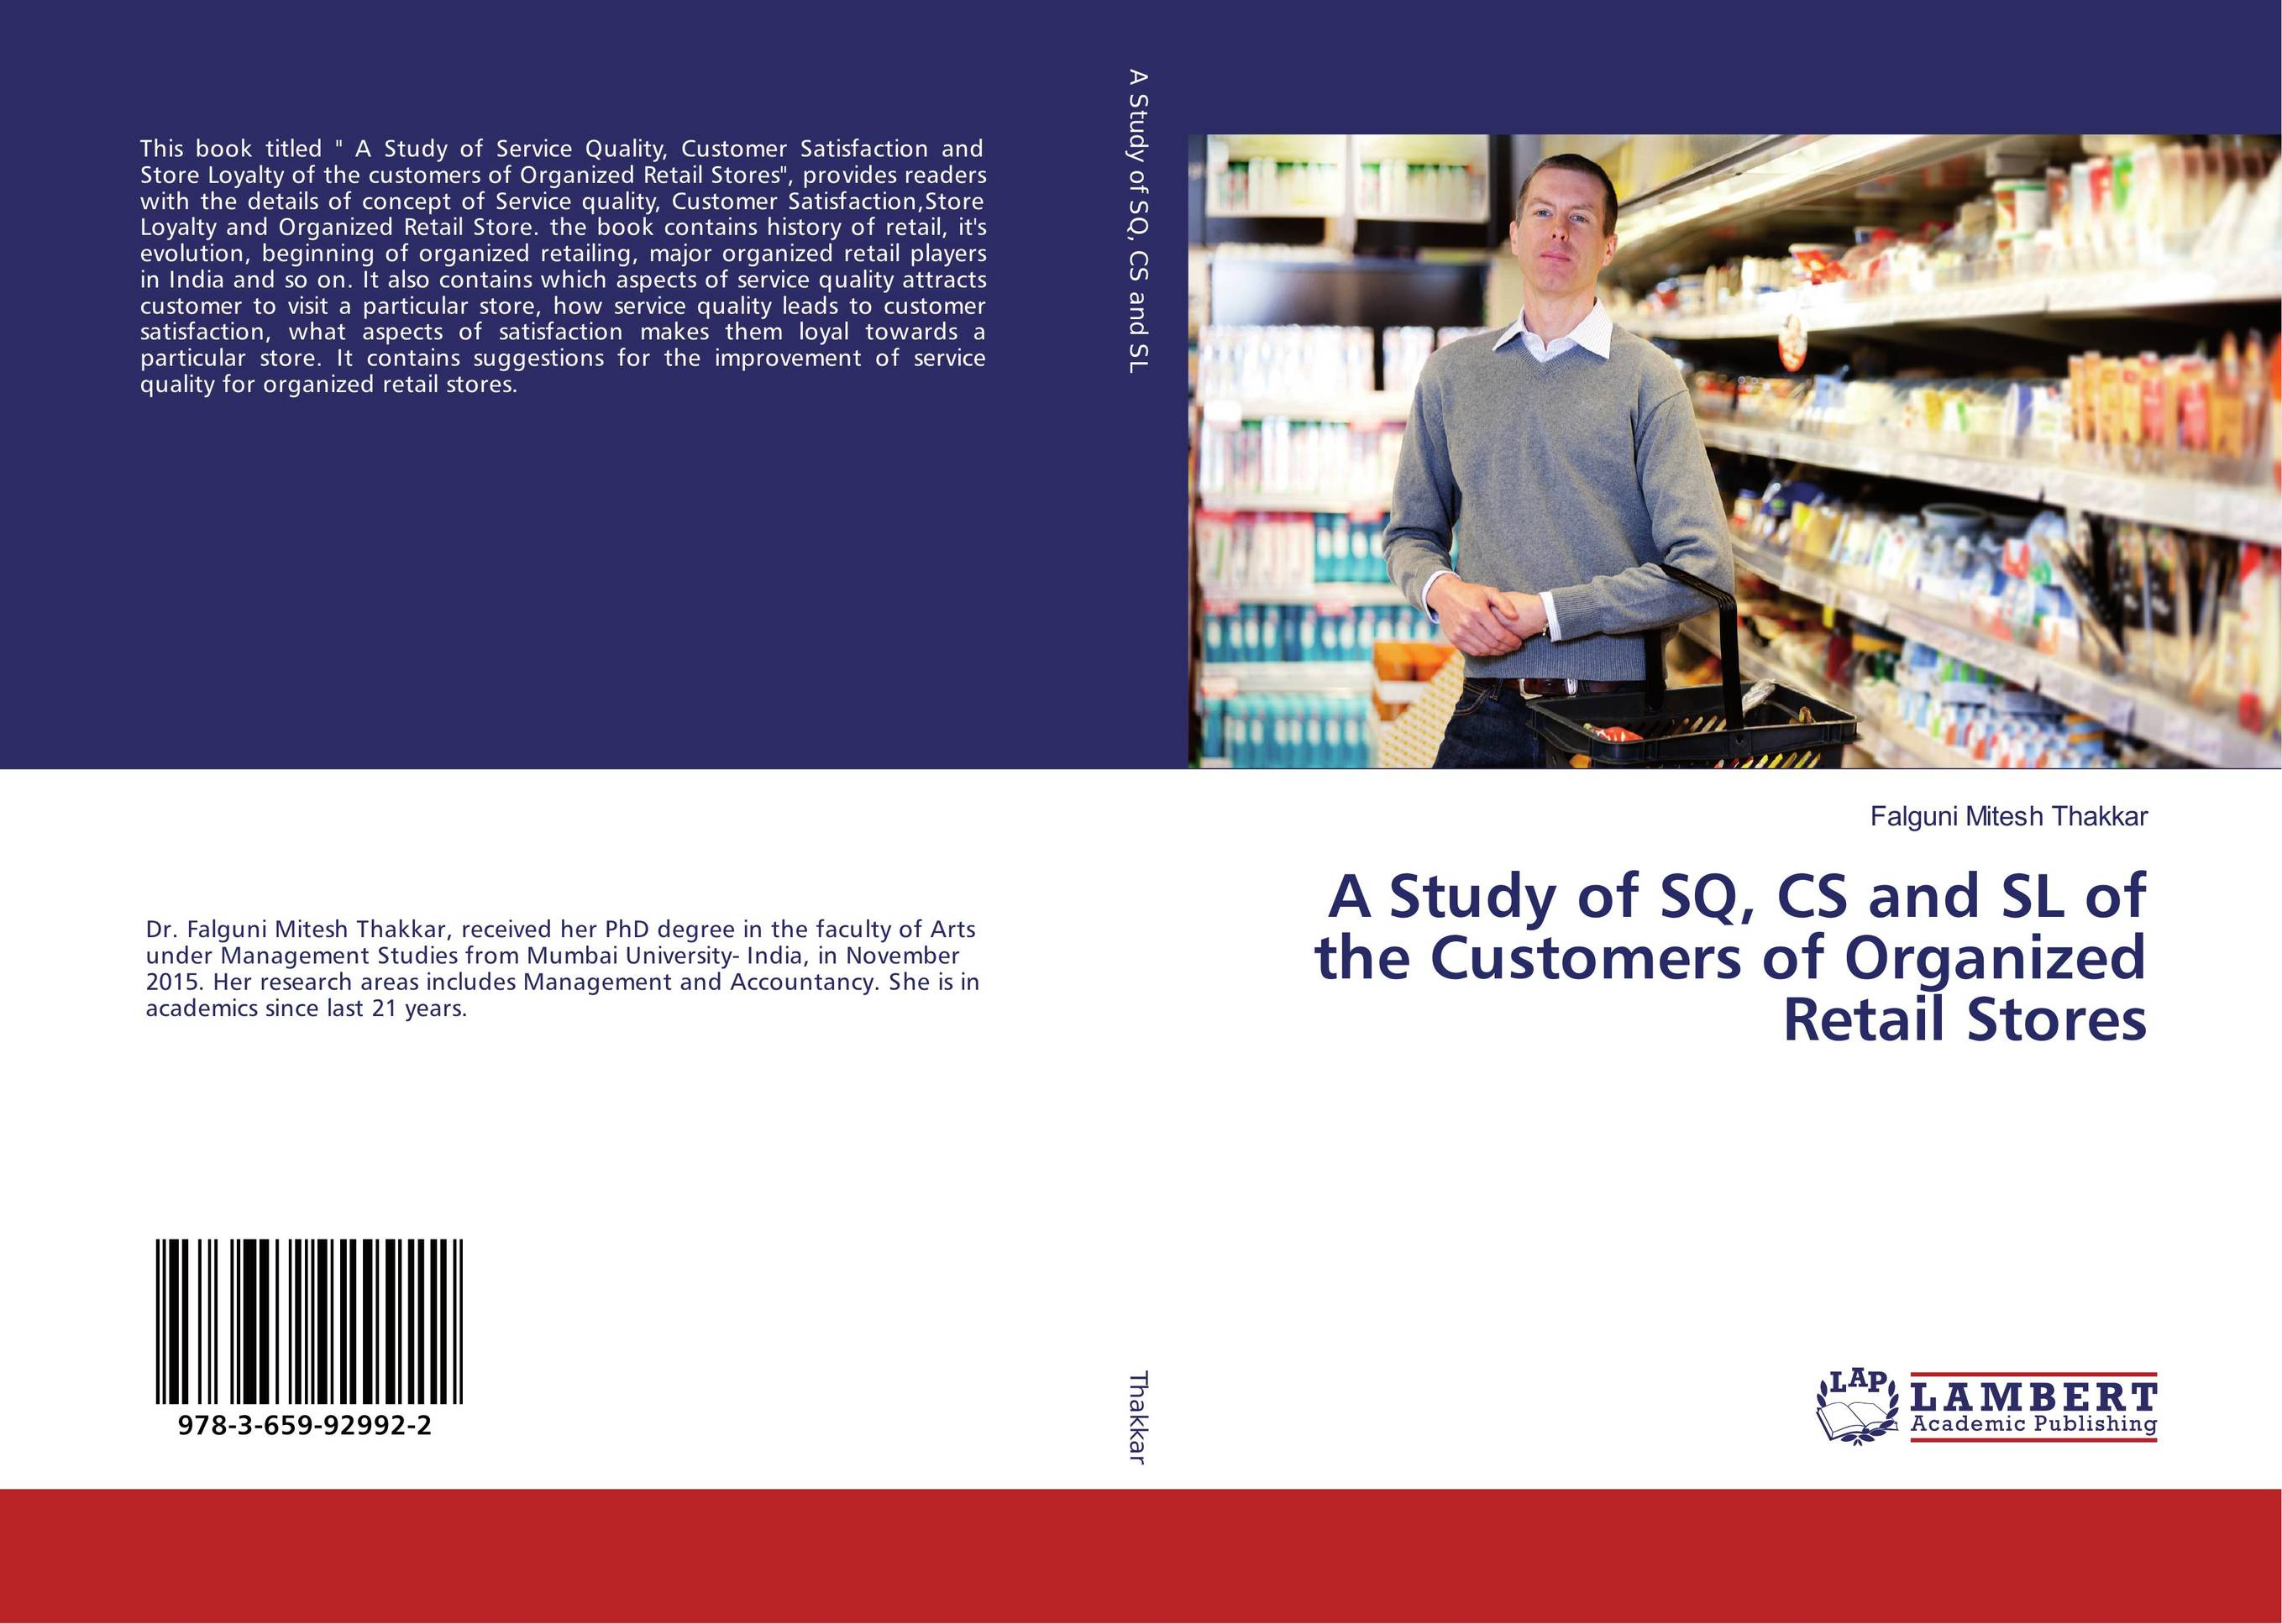 utilitarian and hedonic values on retail store loyalty Both hedonic and utilitarian shopping values are found to influence key retail outcomes the results also support predicted differences in the relative influence of hedonic and utilitarian.